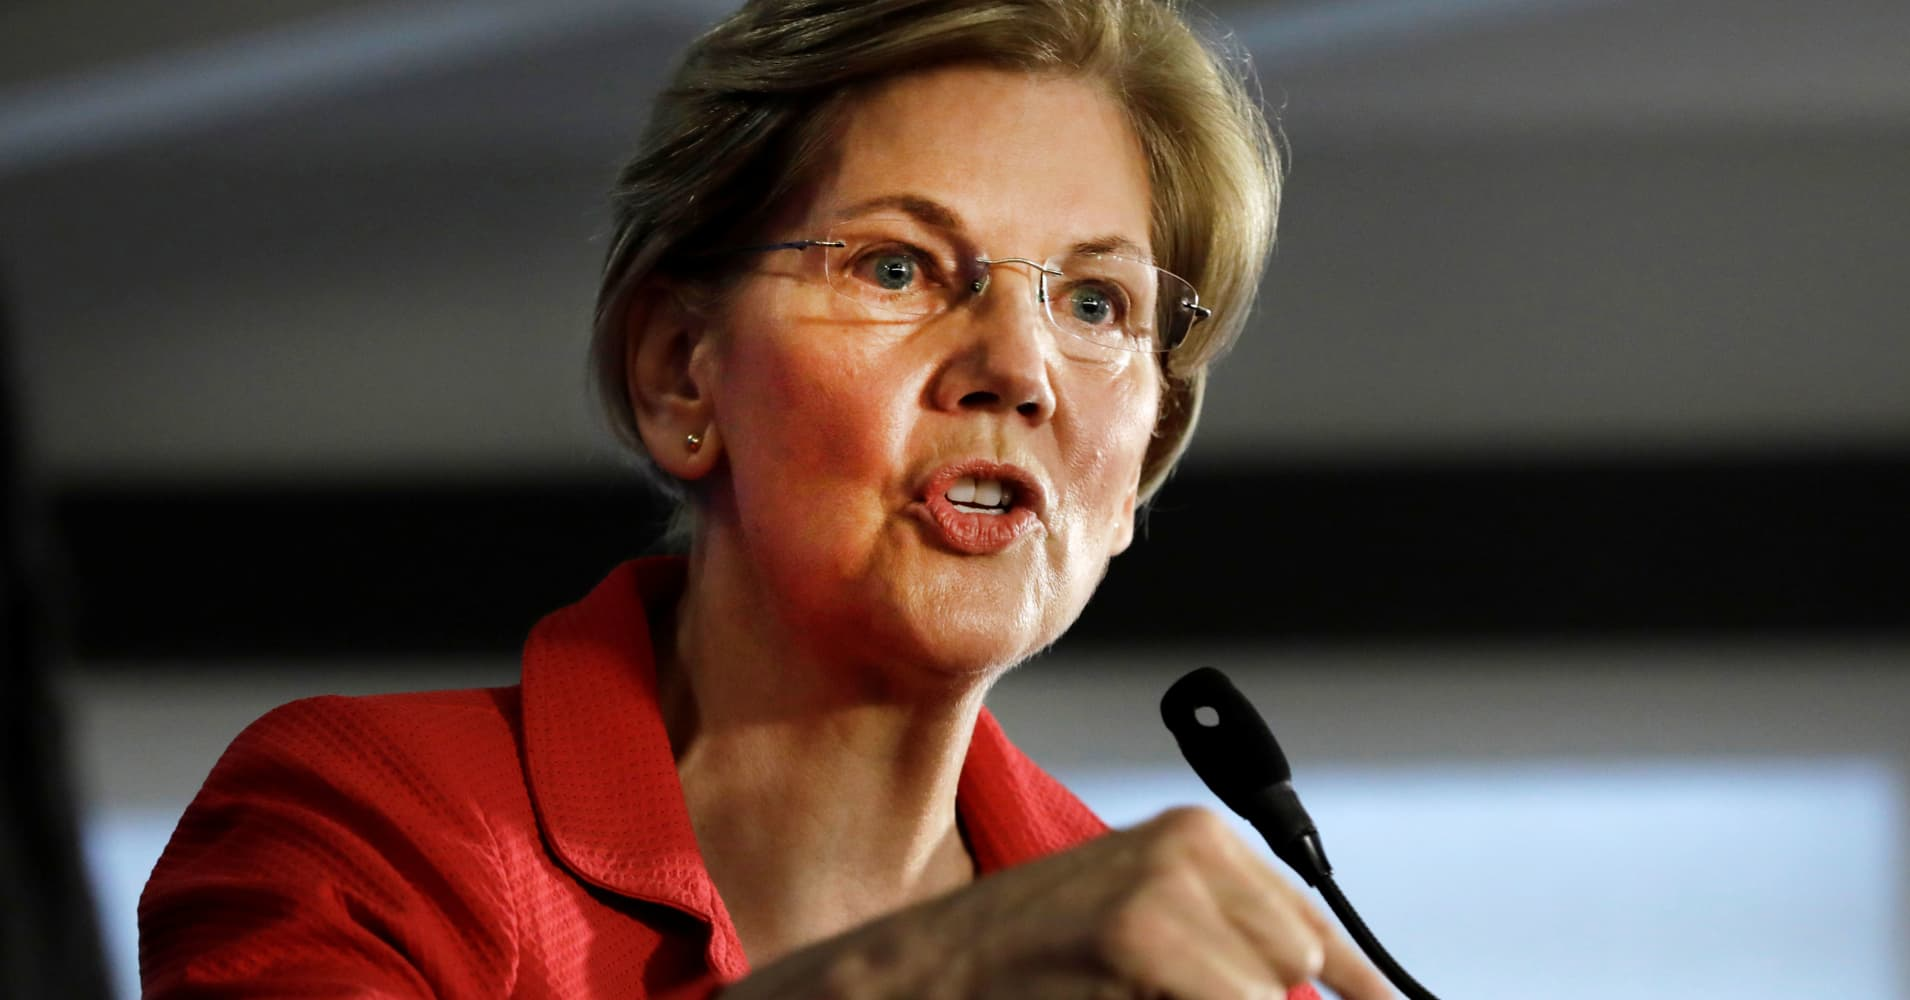 Trump said he would give $1M to charity if Elizabeth Warren took a DNA test. She wants him to pay up